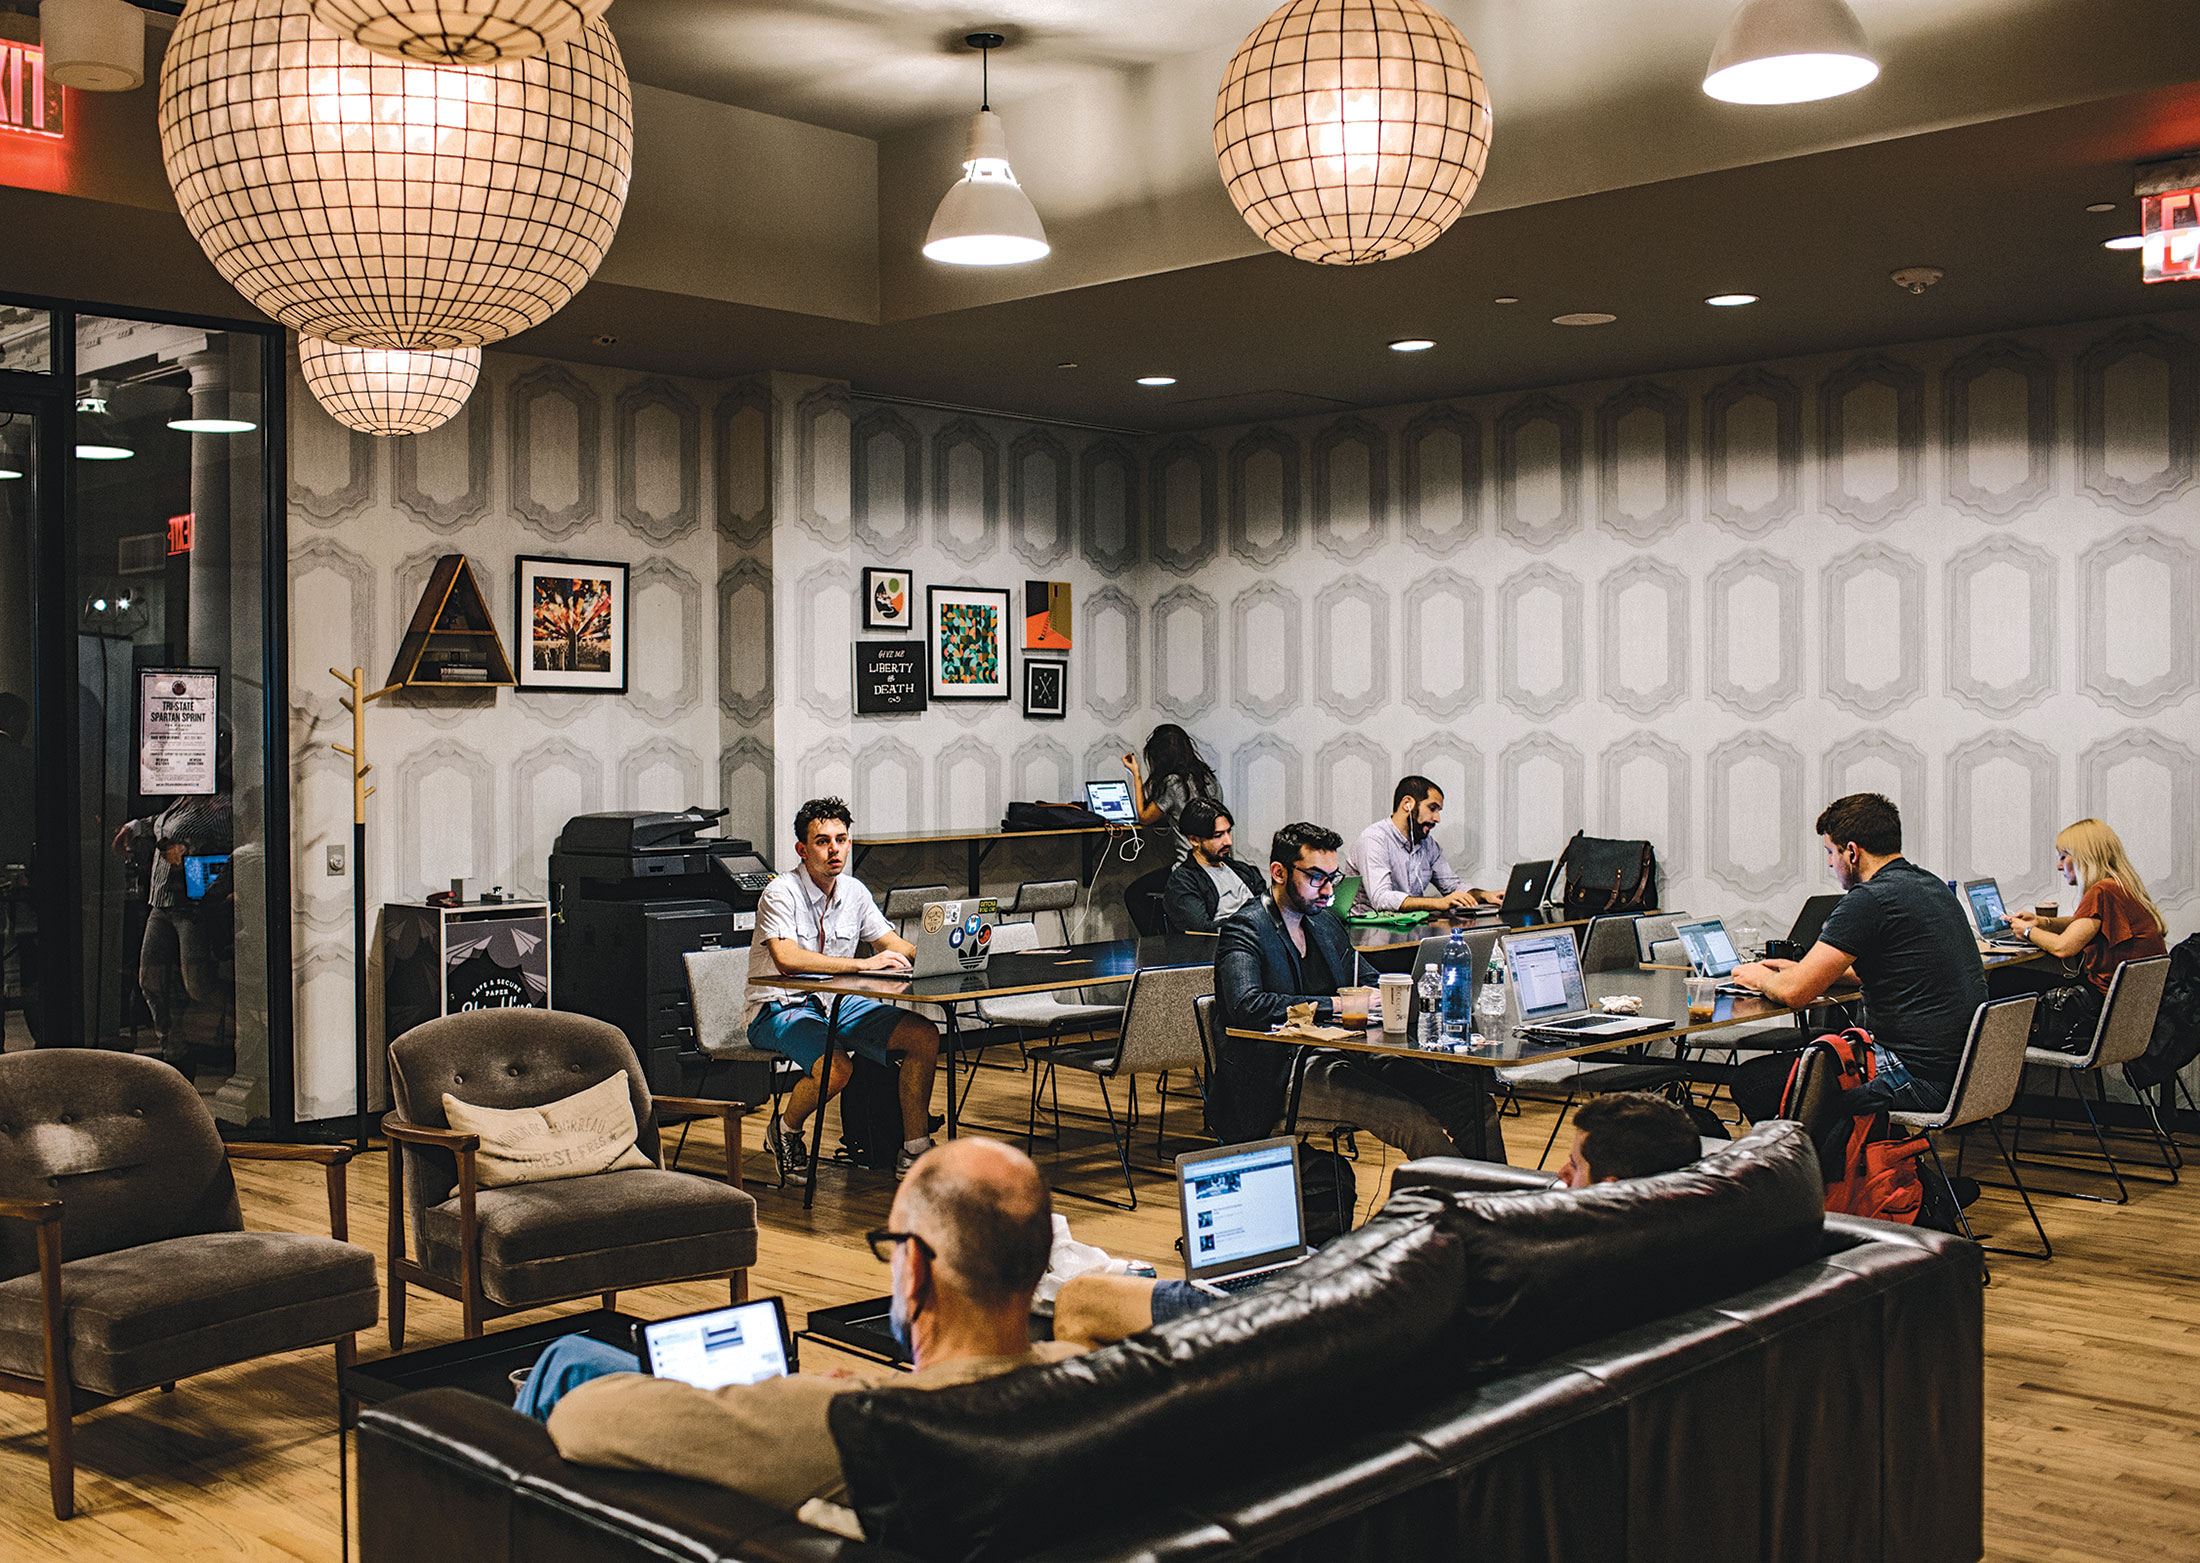 Wework real estate empire or shared office space for a for Small shared office design